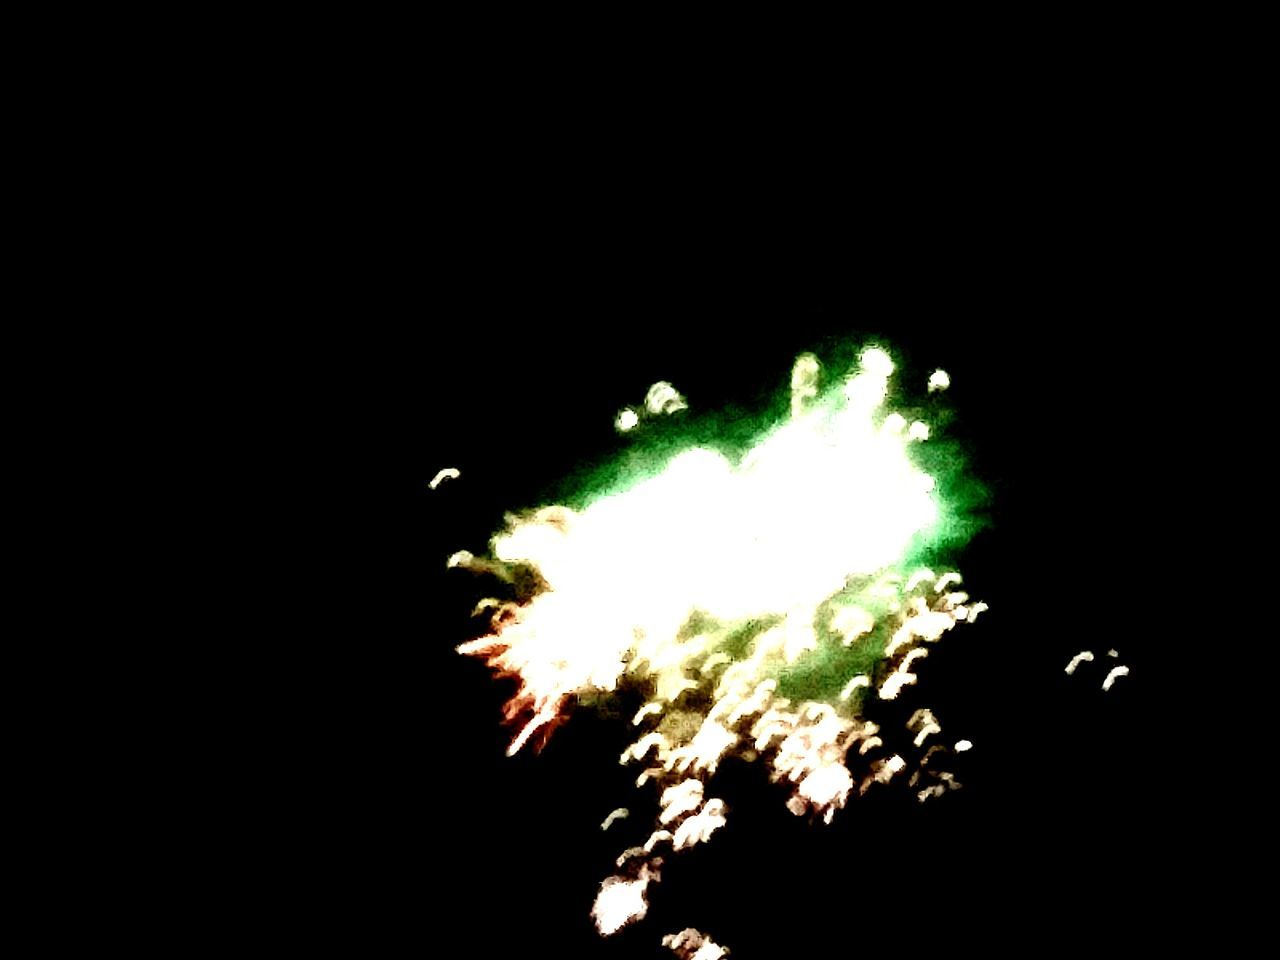 exploding, firework display, firework - man made object, smoke - physical structure, celebration, explosive, black background, motion, arts culture and entertainment, no people, night, blurred motion, event, firework, illuminated, close-up, outdoors, talcum powder, sky